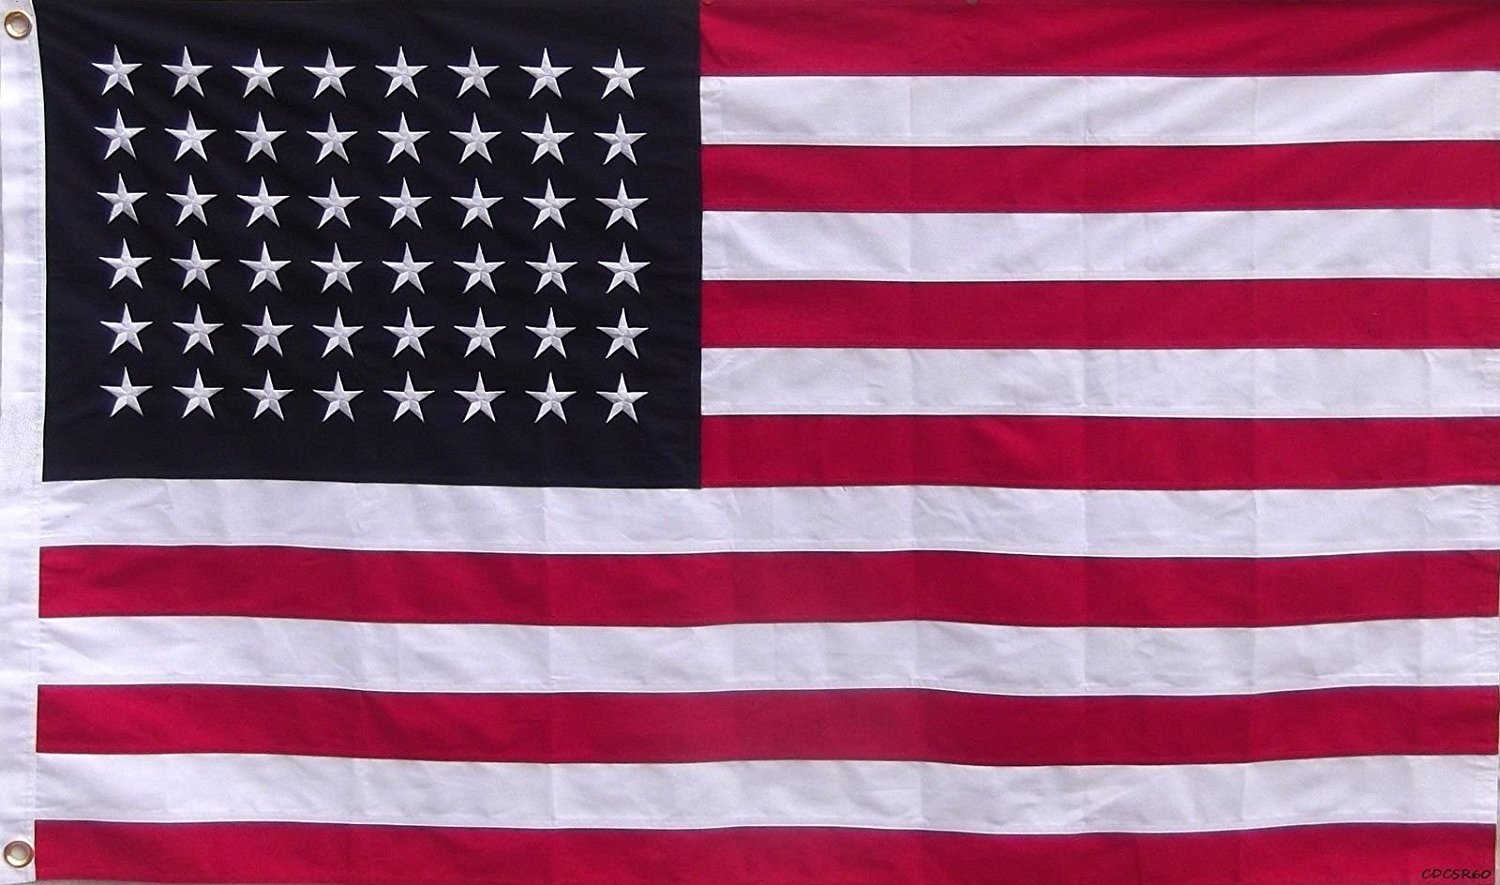 3x5 Embroidered Sewn American 48 Star Linear Cotton Flag 3'x5' (hand sewn)